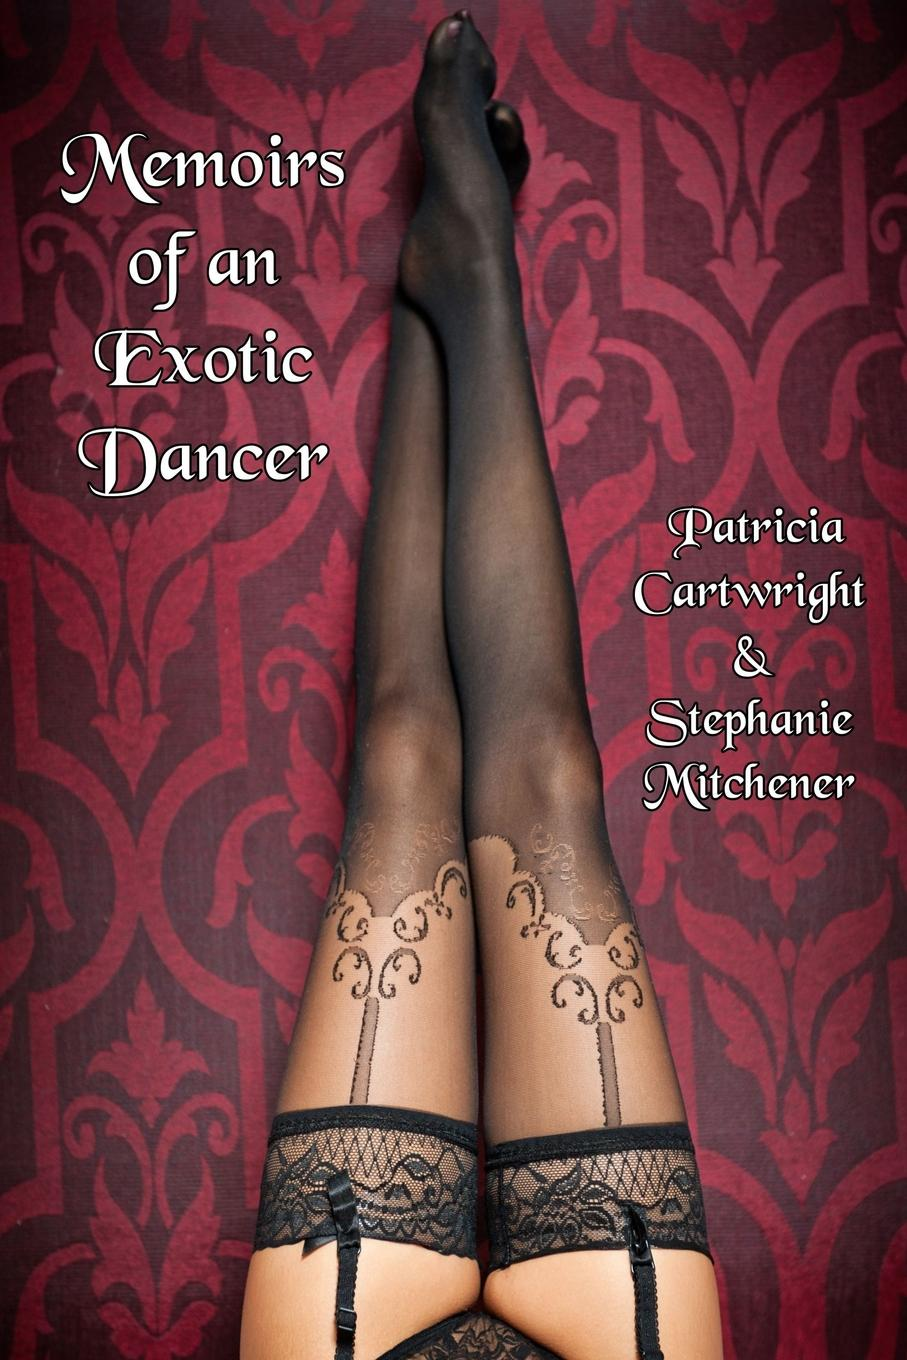 Patricia Cartwright, Stephanie Mitchener Memoirs of an Exotic Dancer dancing at the chance